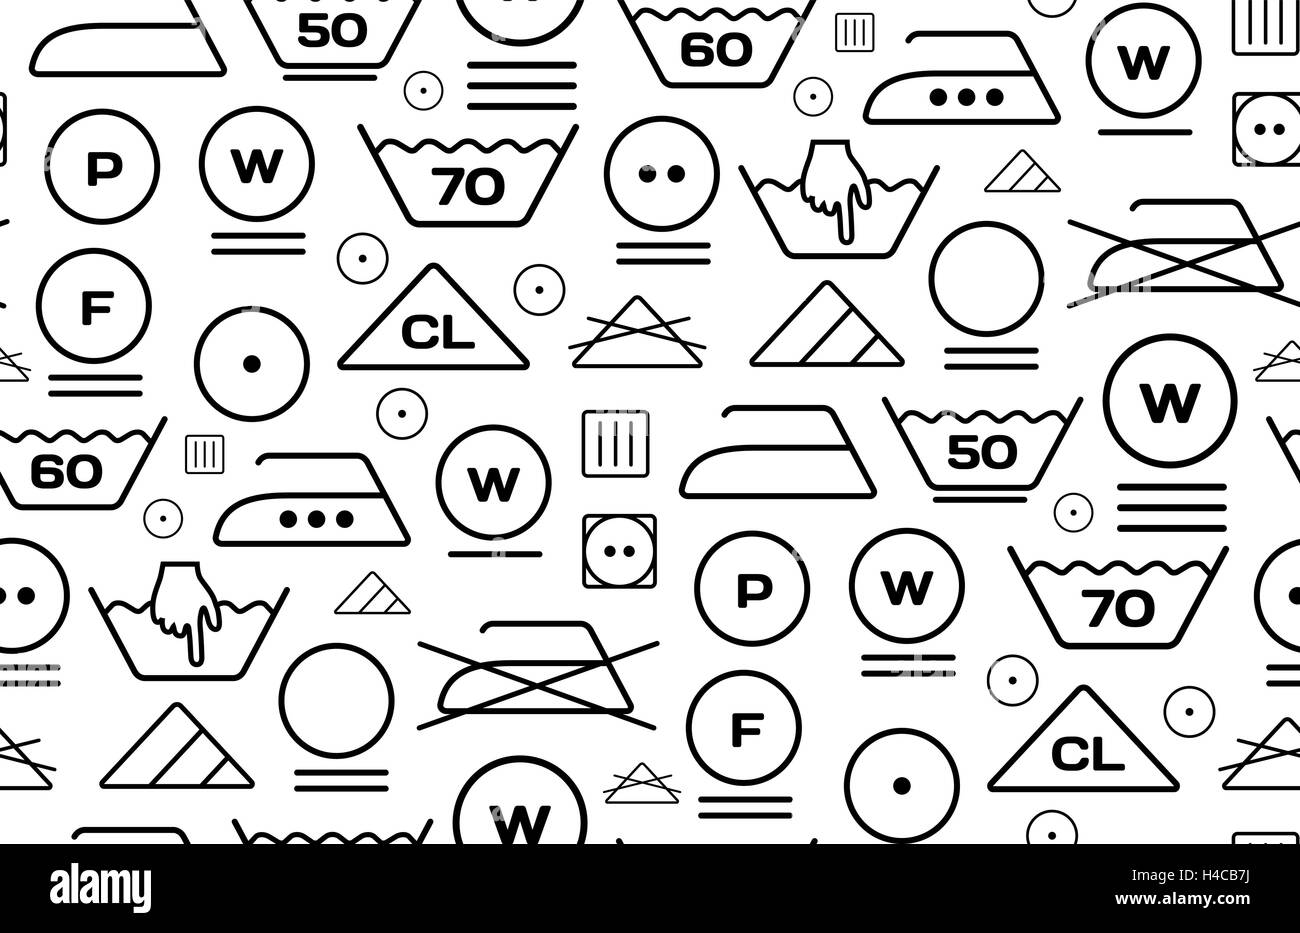 Pattern created from laundry washing symbols on a white background pattern created from laundry washing symbols on a white background buycottarizona Gallery